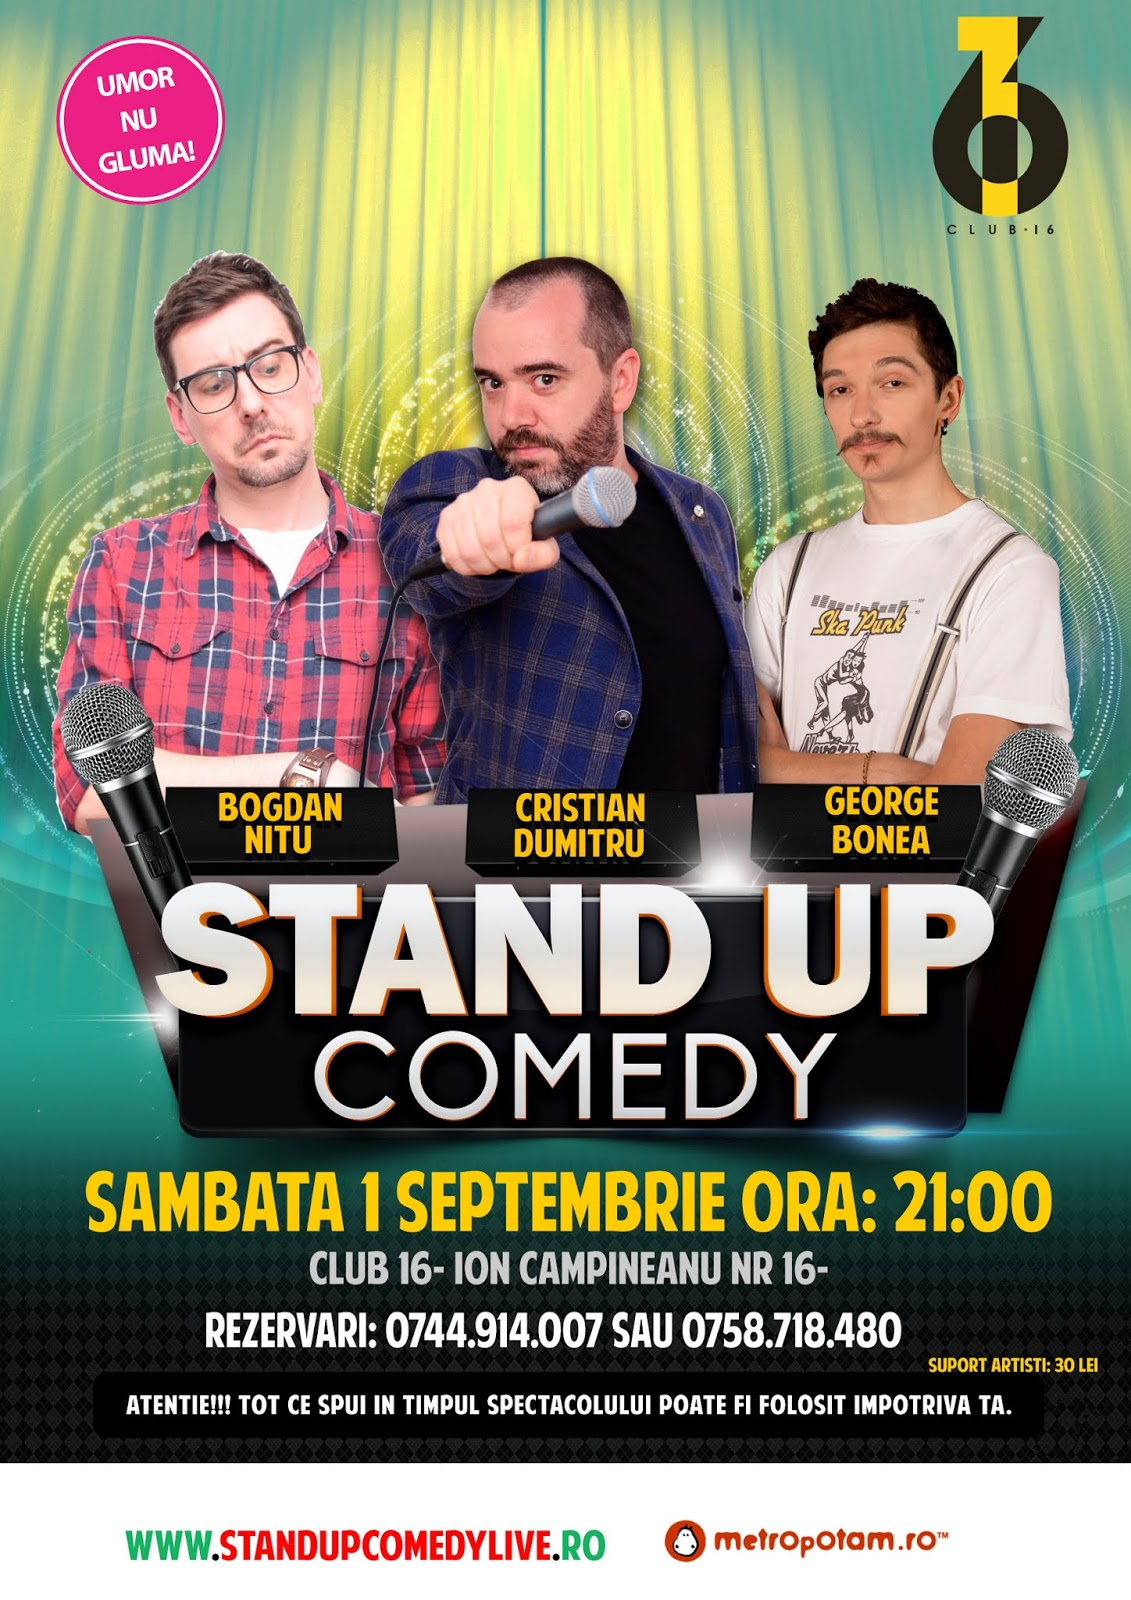 Stand-Up Comedy 1 Sept. Bucuresti